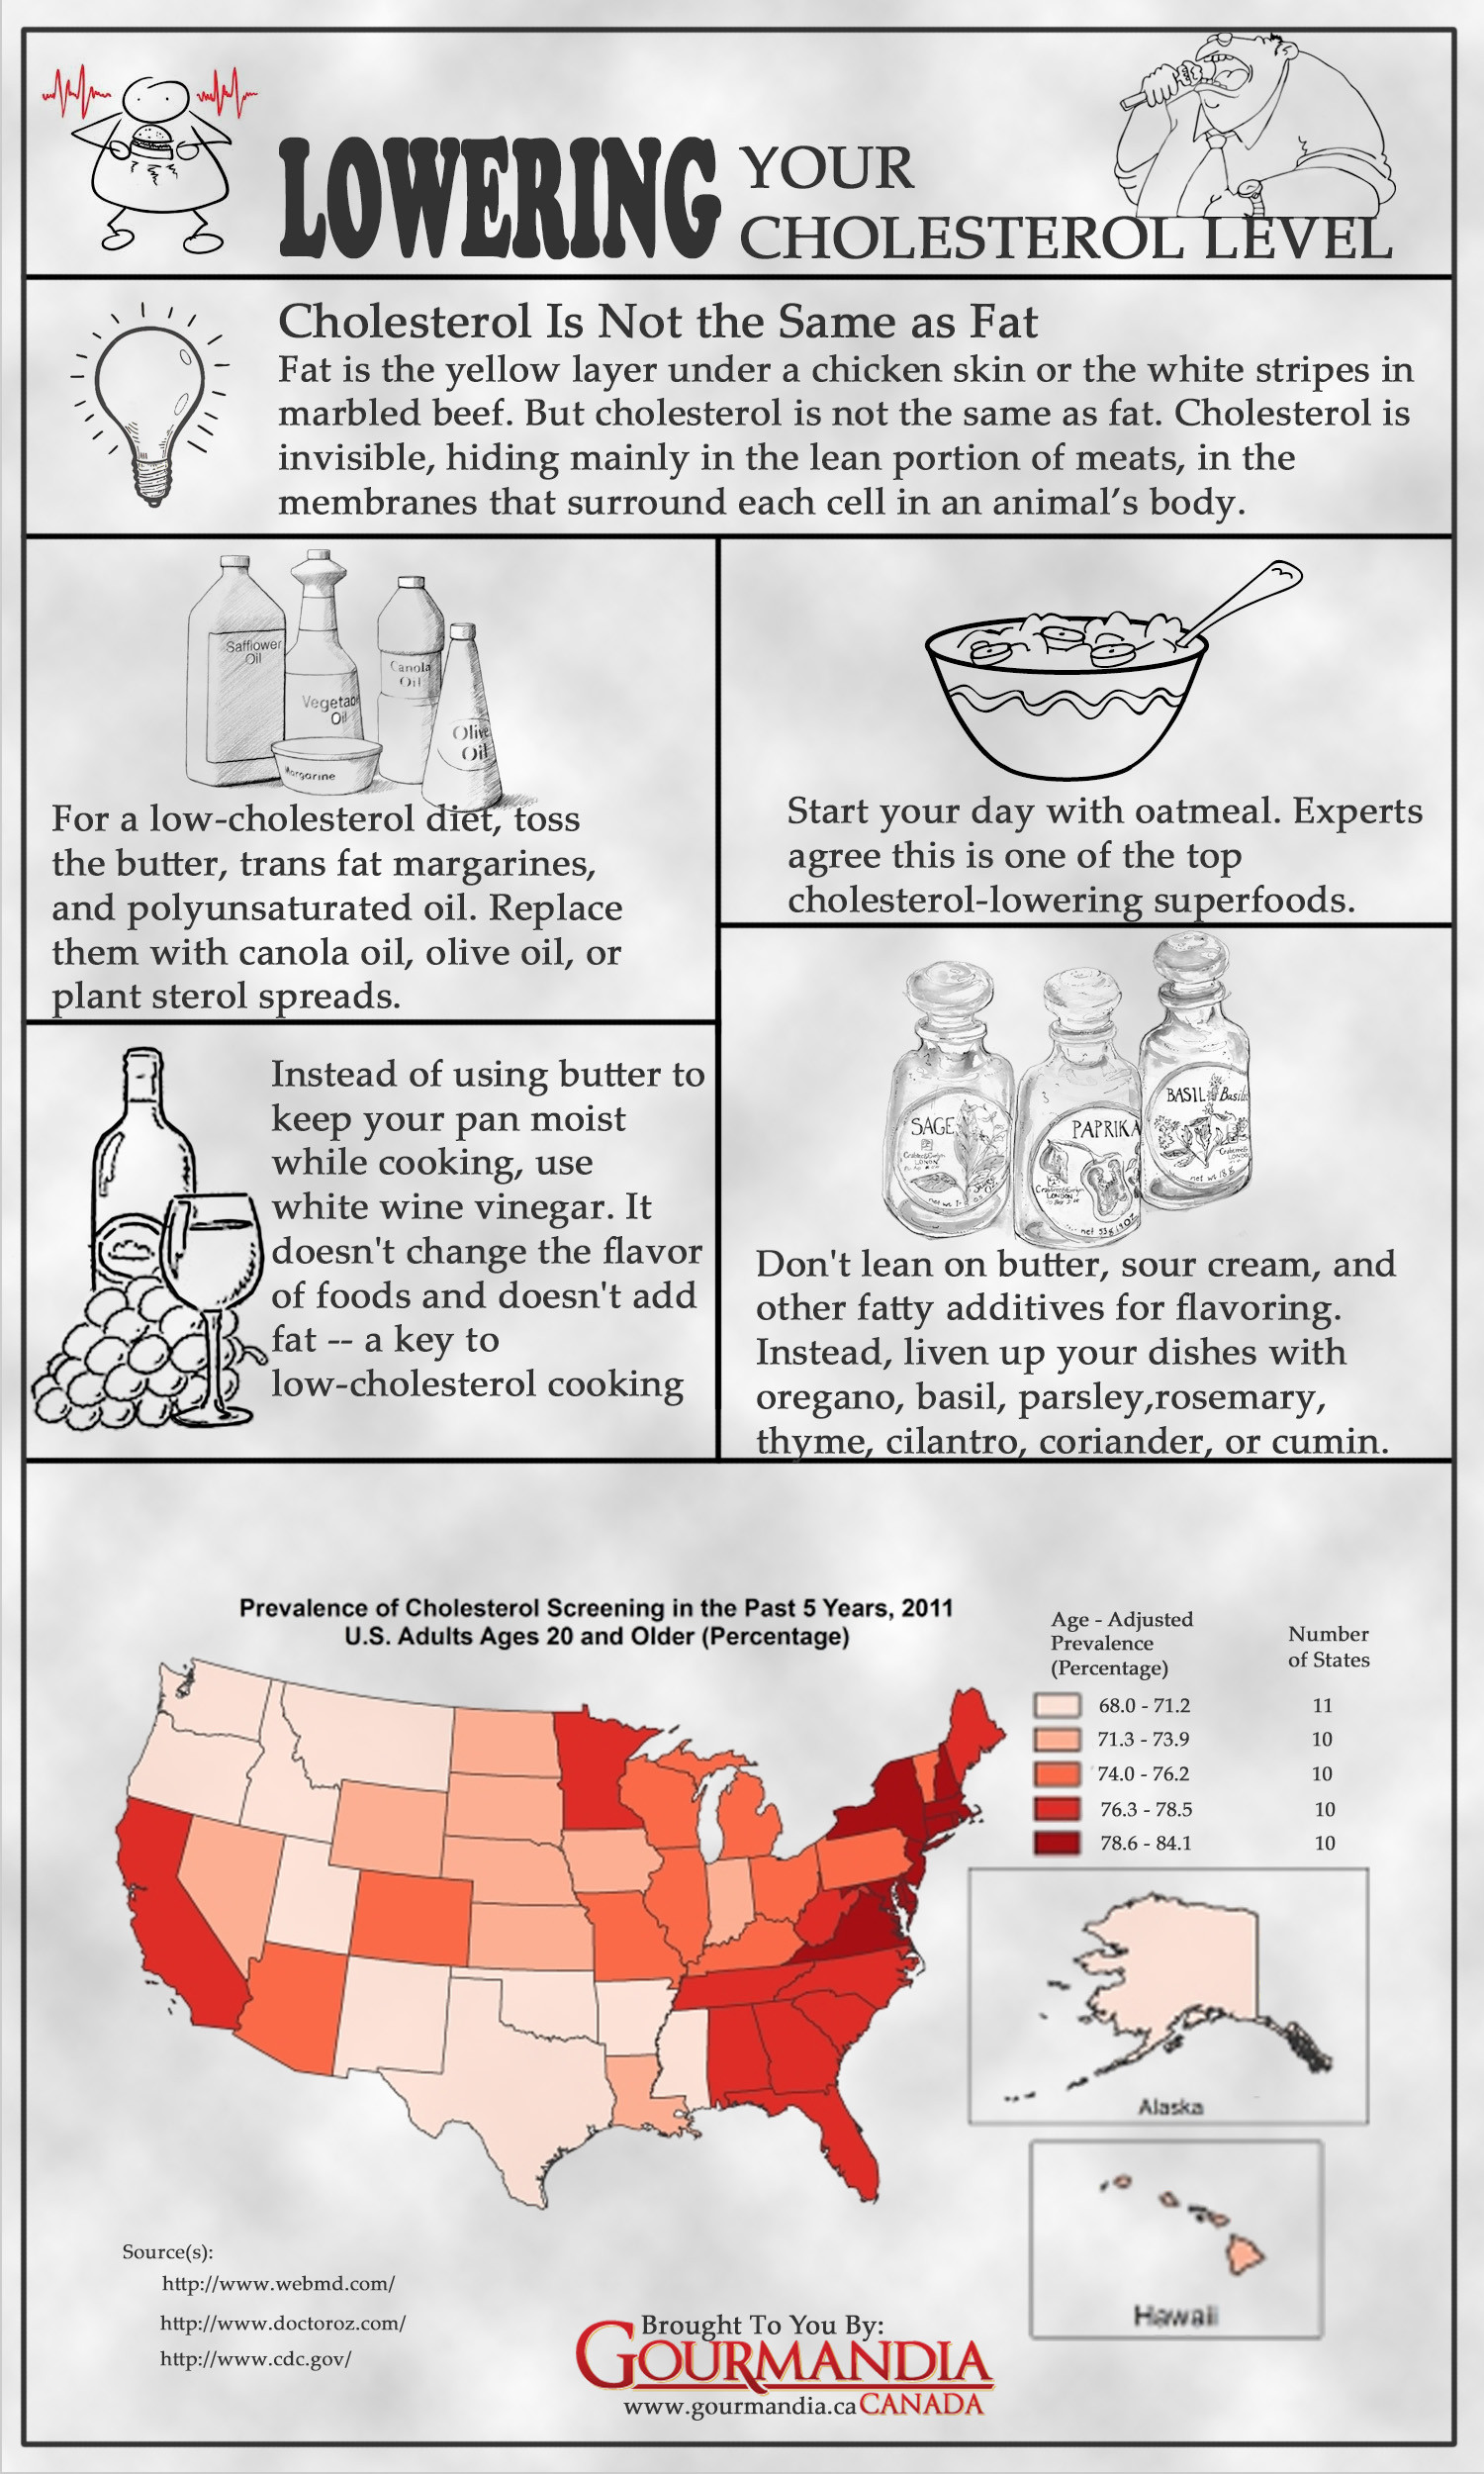 Lowering Cholesterol Level Infographic